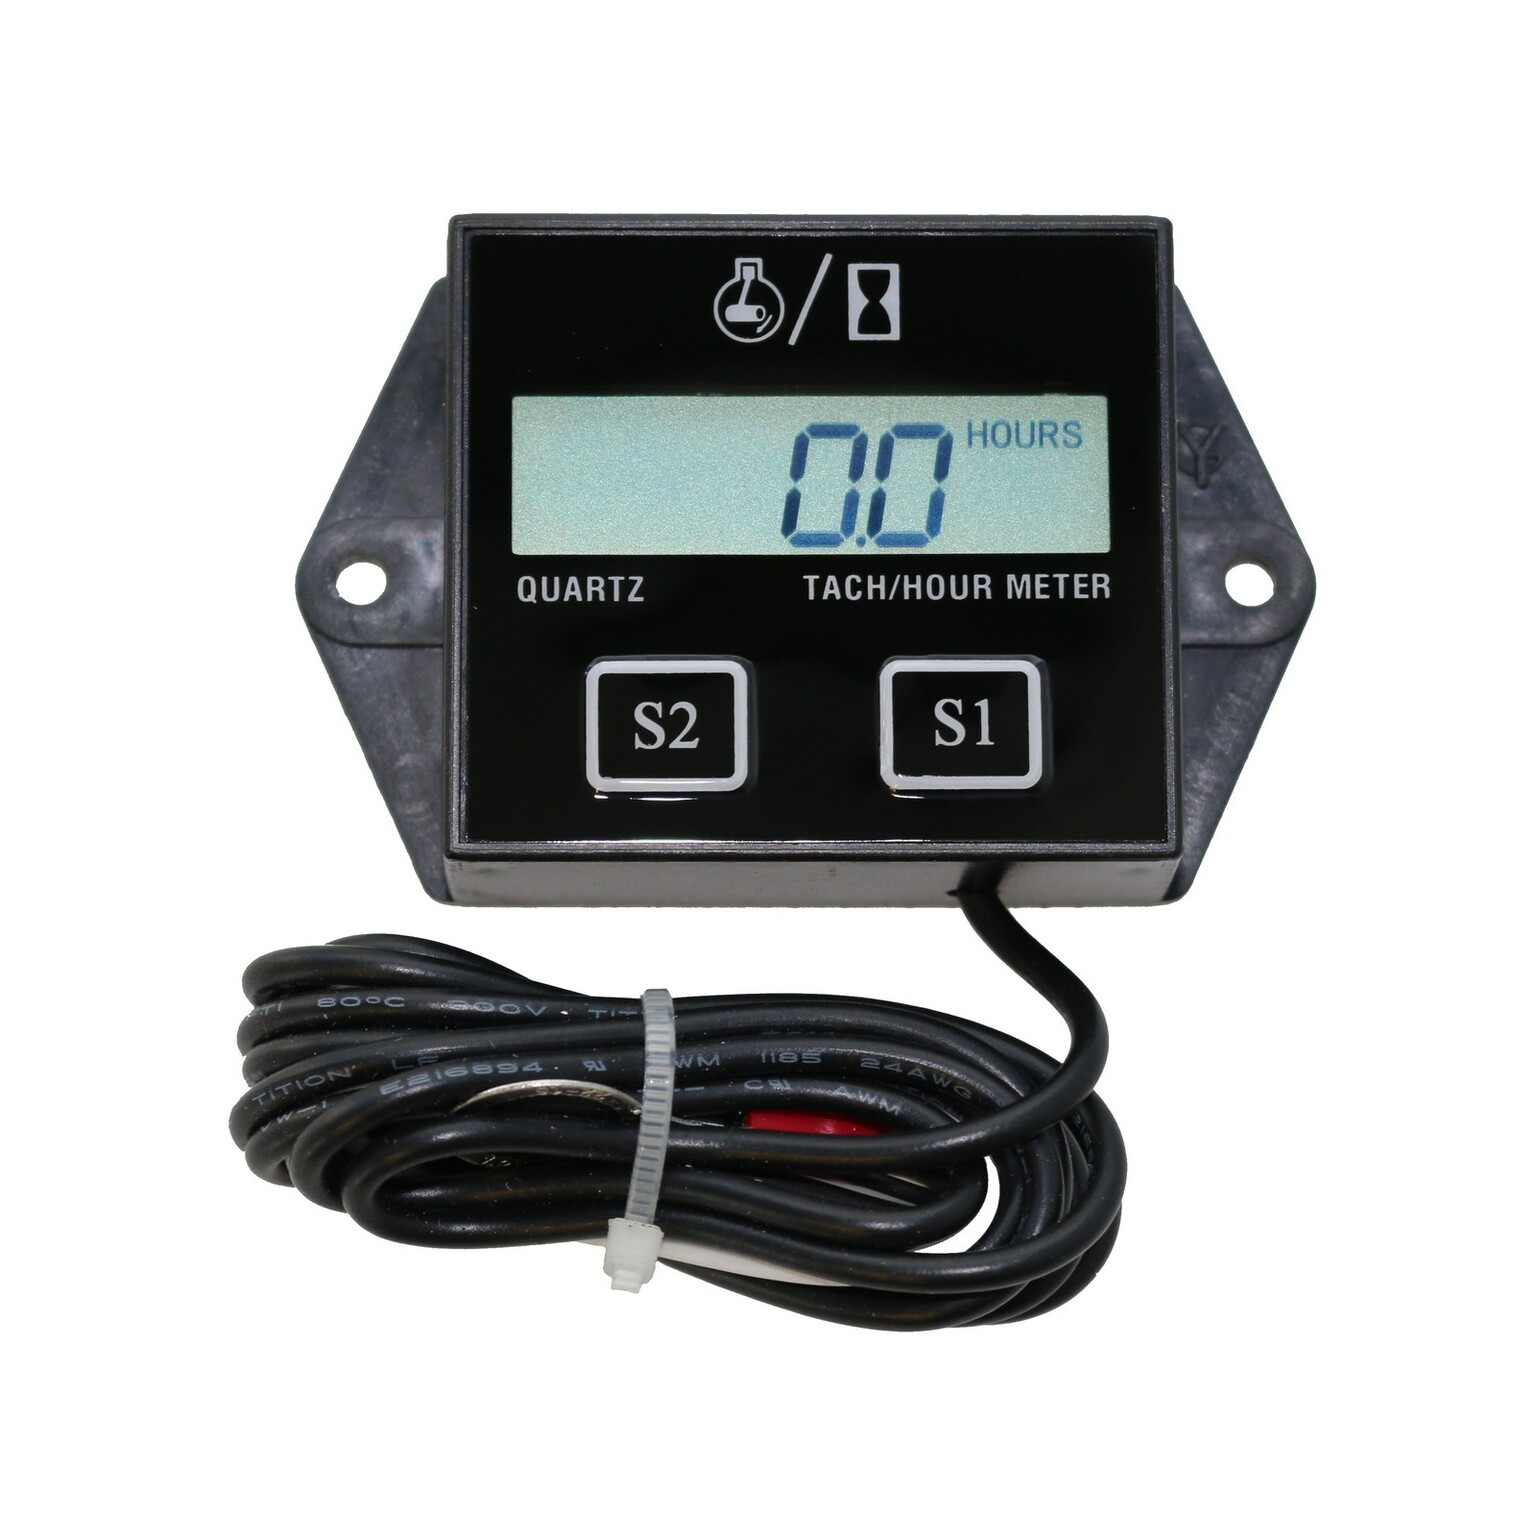 Kohler Digital Tachometer For Small Engine Honda Briggs /& Stratton